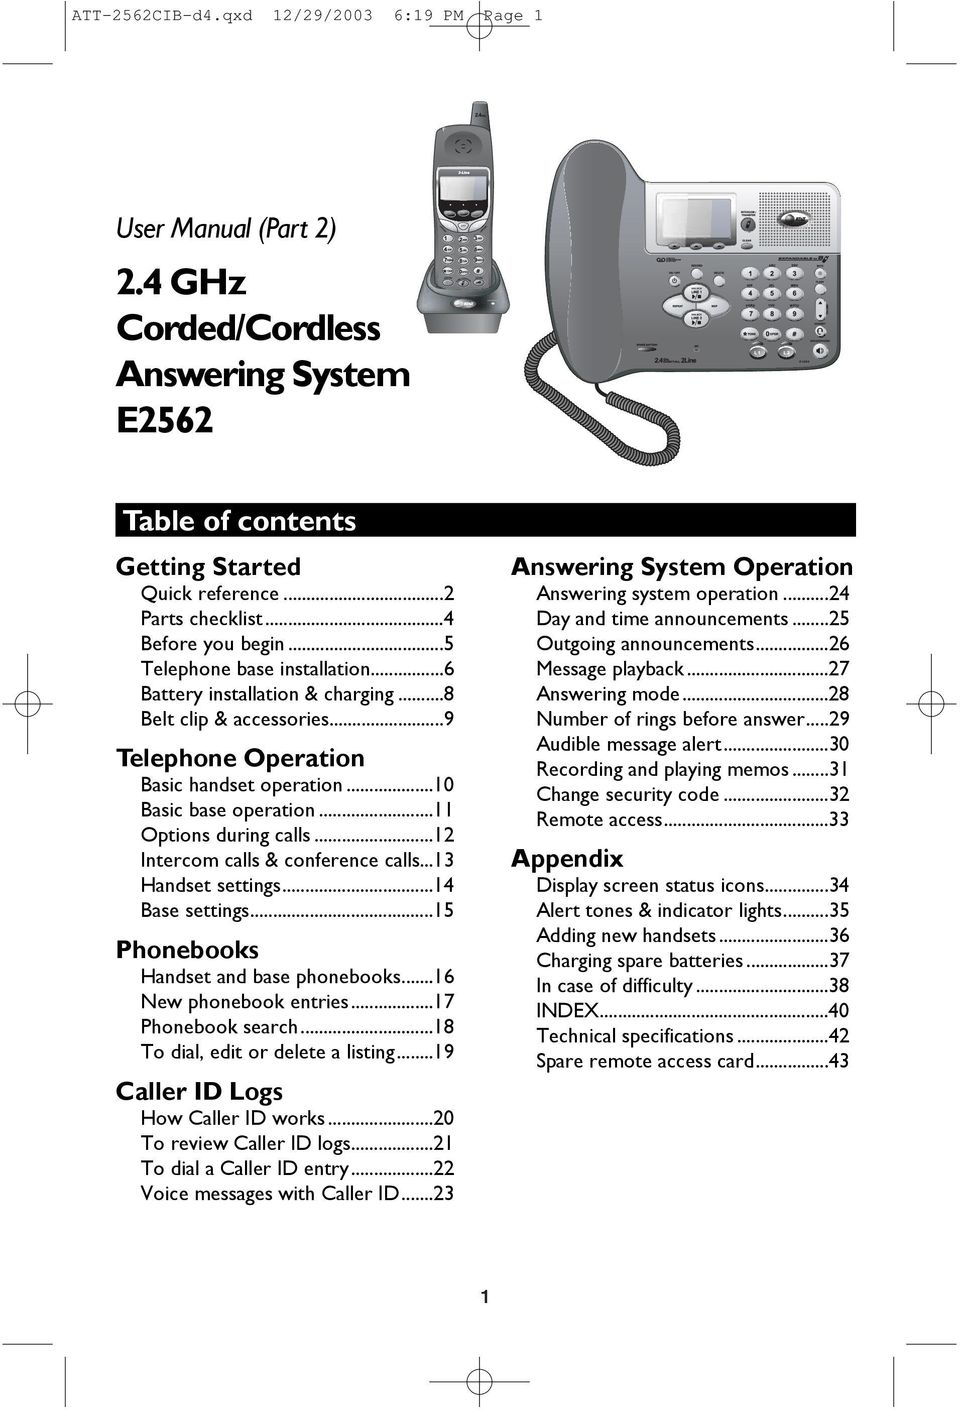 ..11 Options during calls...12 Intercom calls & conference calls...13 Handset settings...14 Base settings...15 Phonebooks Handset and base phonebooks...16 New phonebook entries...17 Phonebook search.